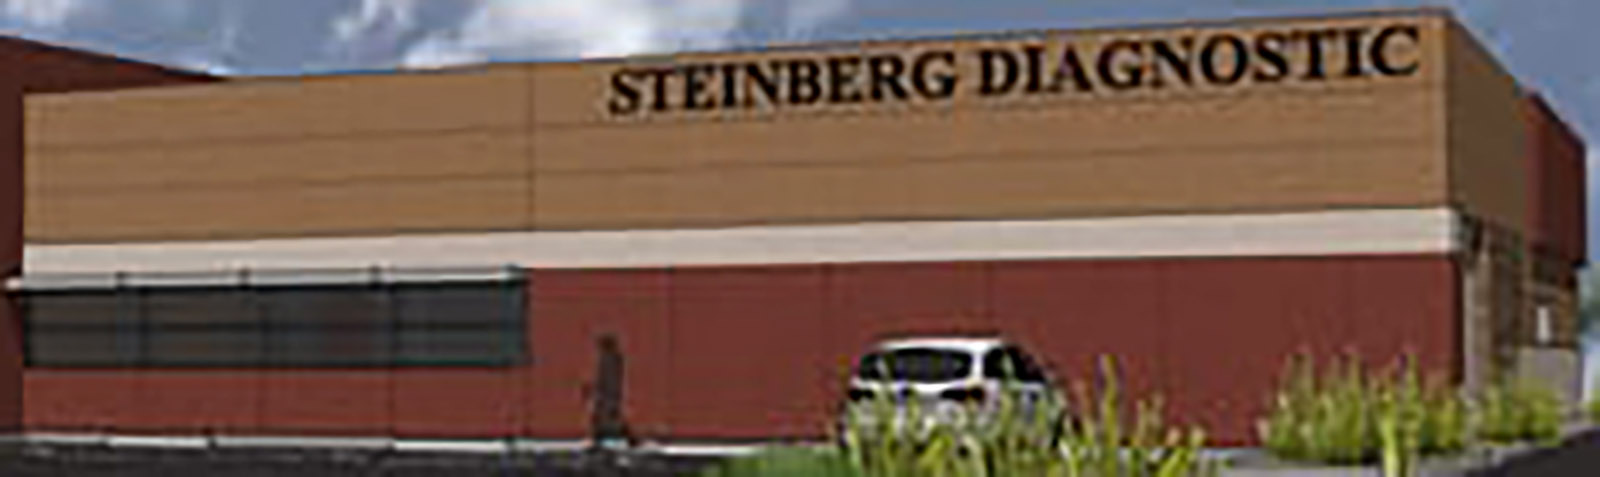 Steinberg Diagnostic Medical Imaging Celebrates 30 Years